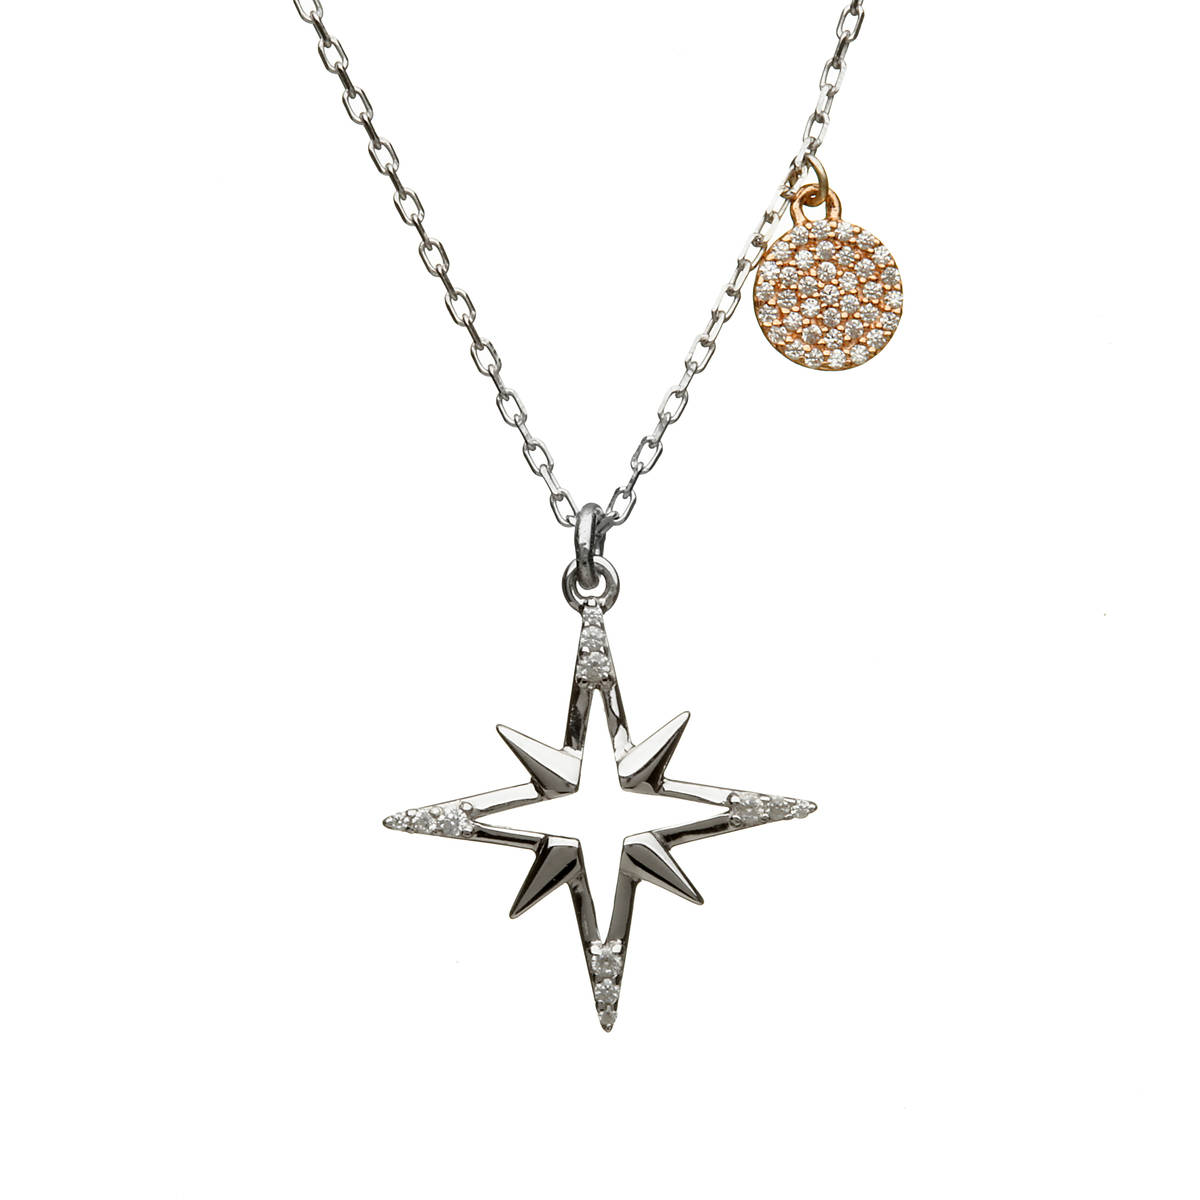 House of Lor silver/rose star cz pendant with disc made from rare Irish goldapck/drcck